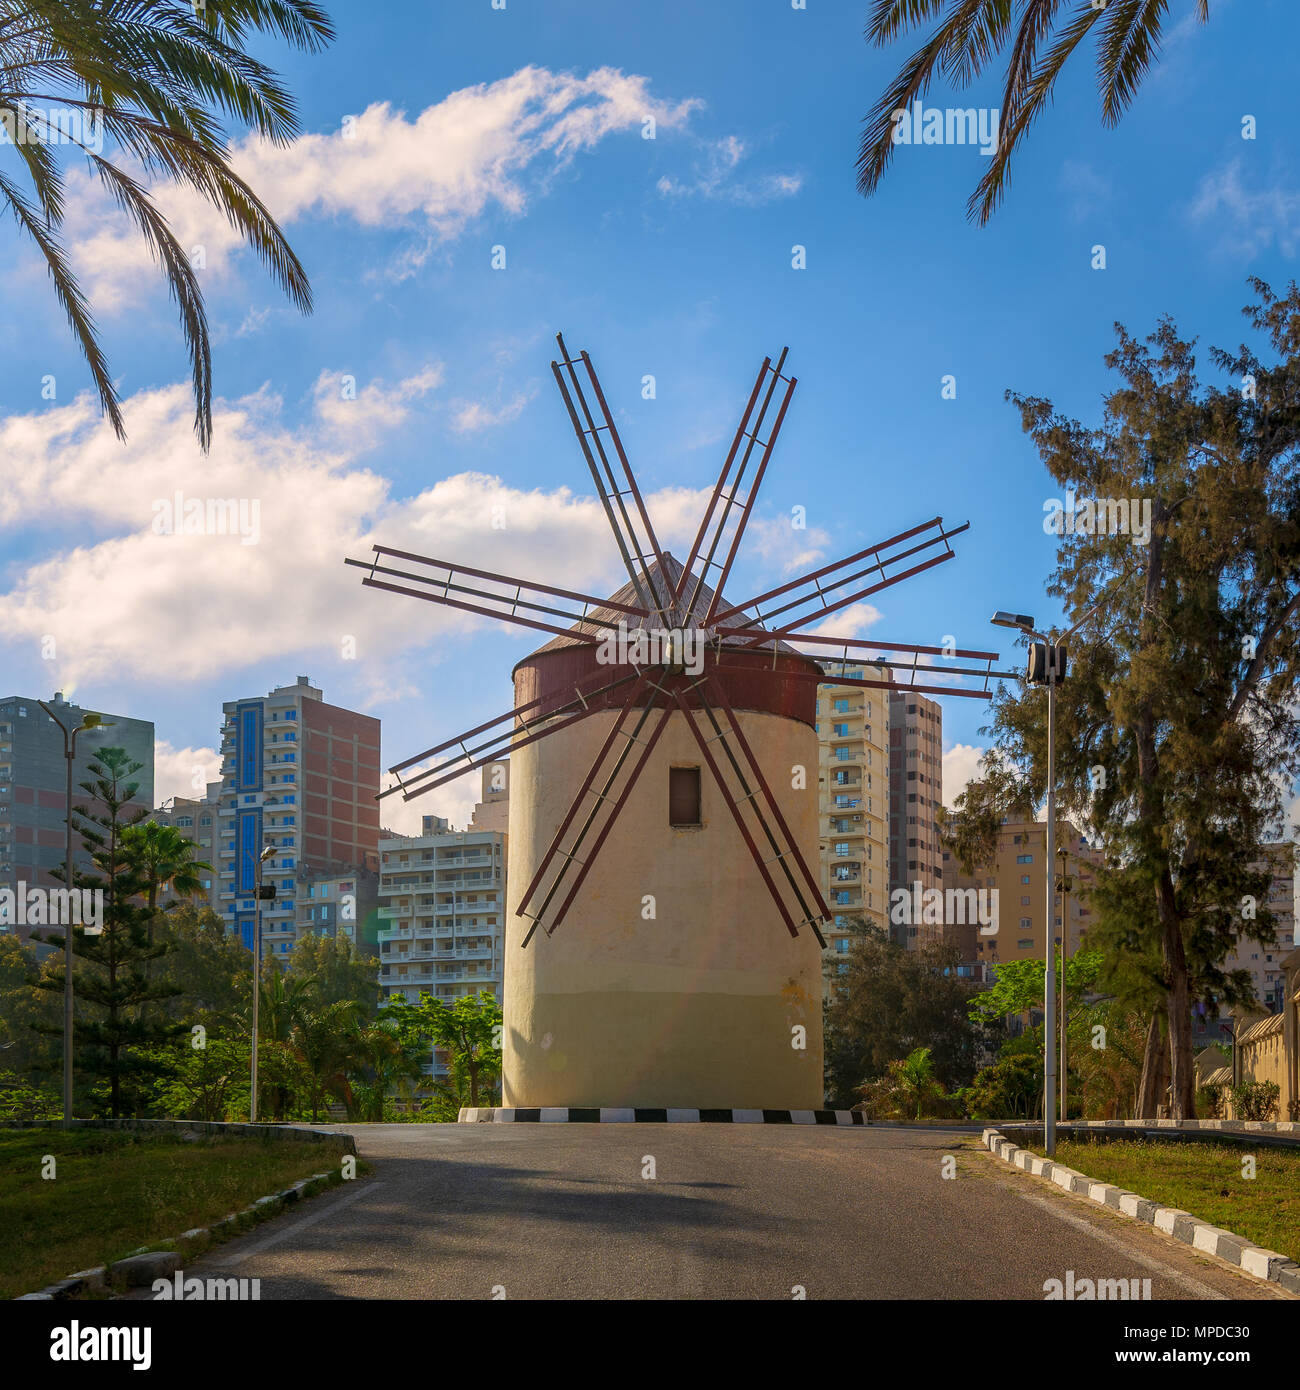 Old traditional windmill at Montaza public park in sunny summer day, Alexandria, Egypt - Stock Image